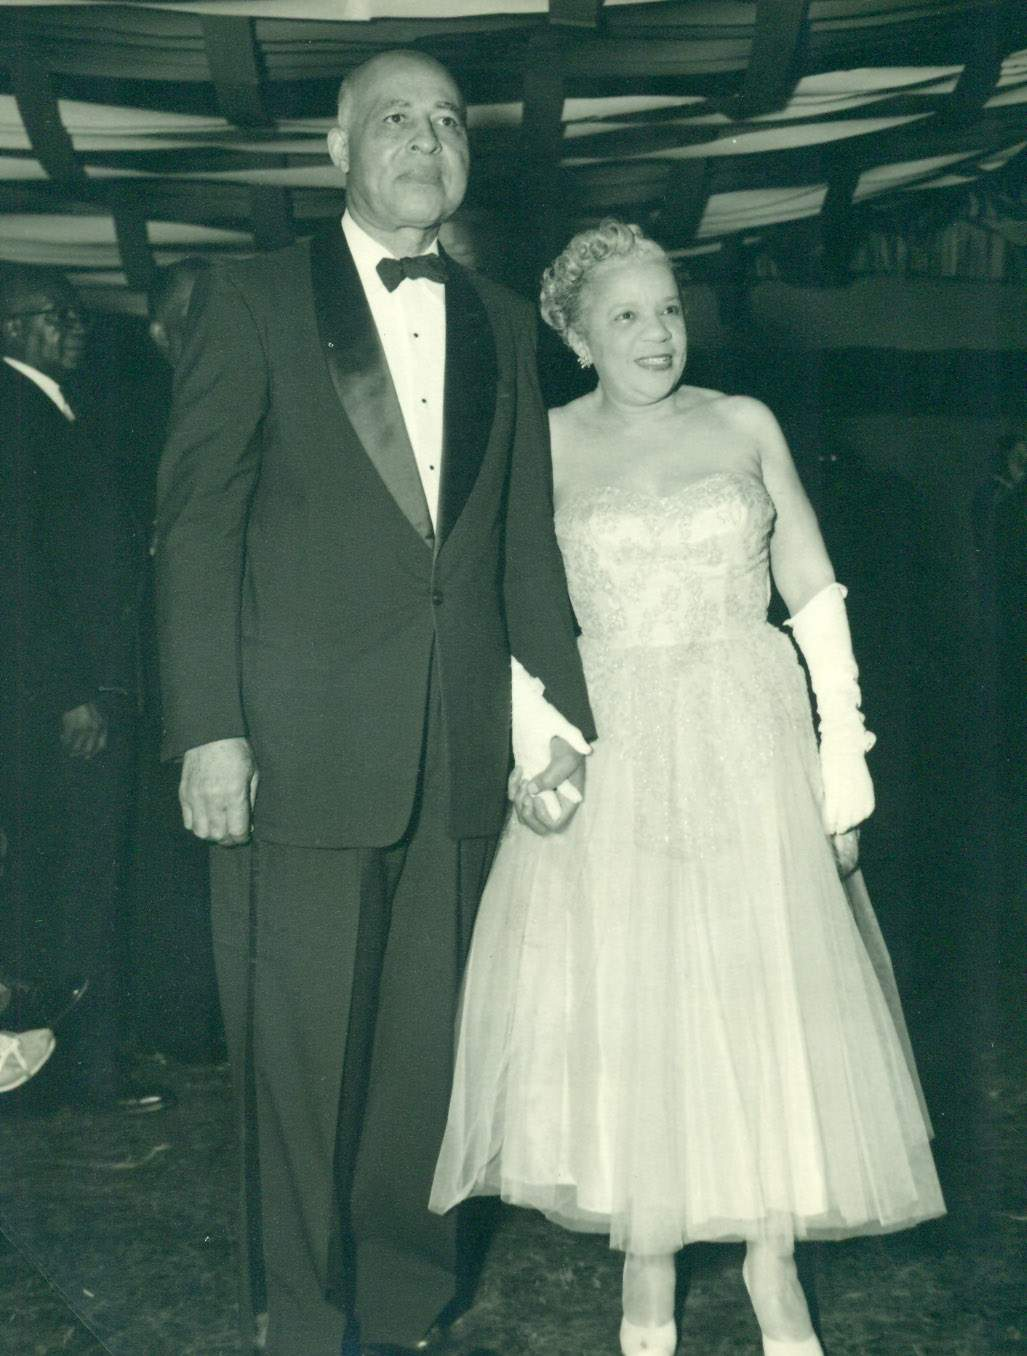 John C. Norman Sr and his wife Ruth Stephenson